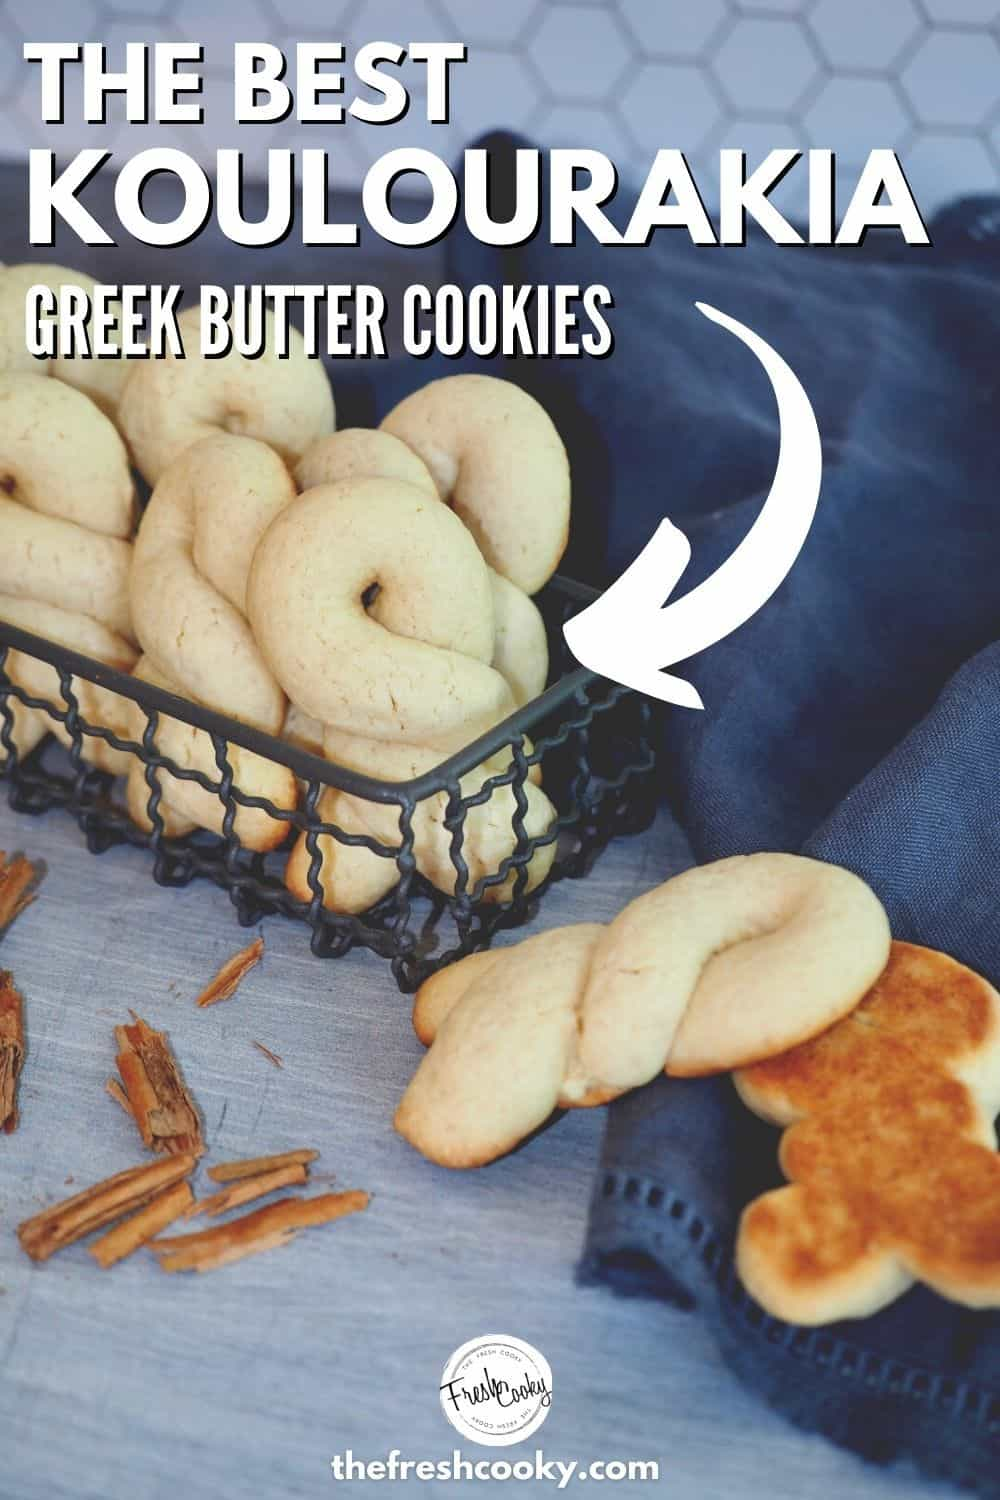 Greek Butter cookies also called Koulourakia are a traditional Greek Cookie, made at Easter and Christmas. Tender, buttery pastry like cookies that are shaped into twists, braids and crescents. Great dunking cookies! #thefreshcooky #koulourakia #greekcookies via @thefreshcooky